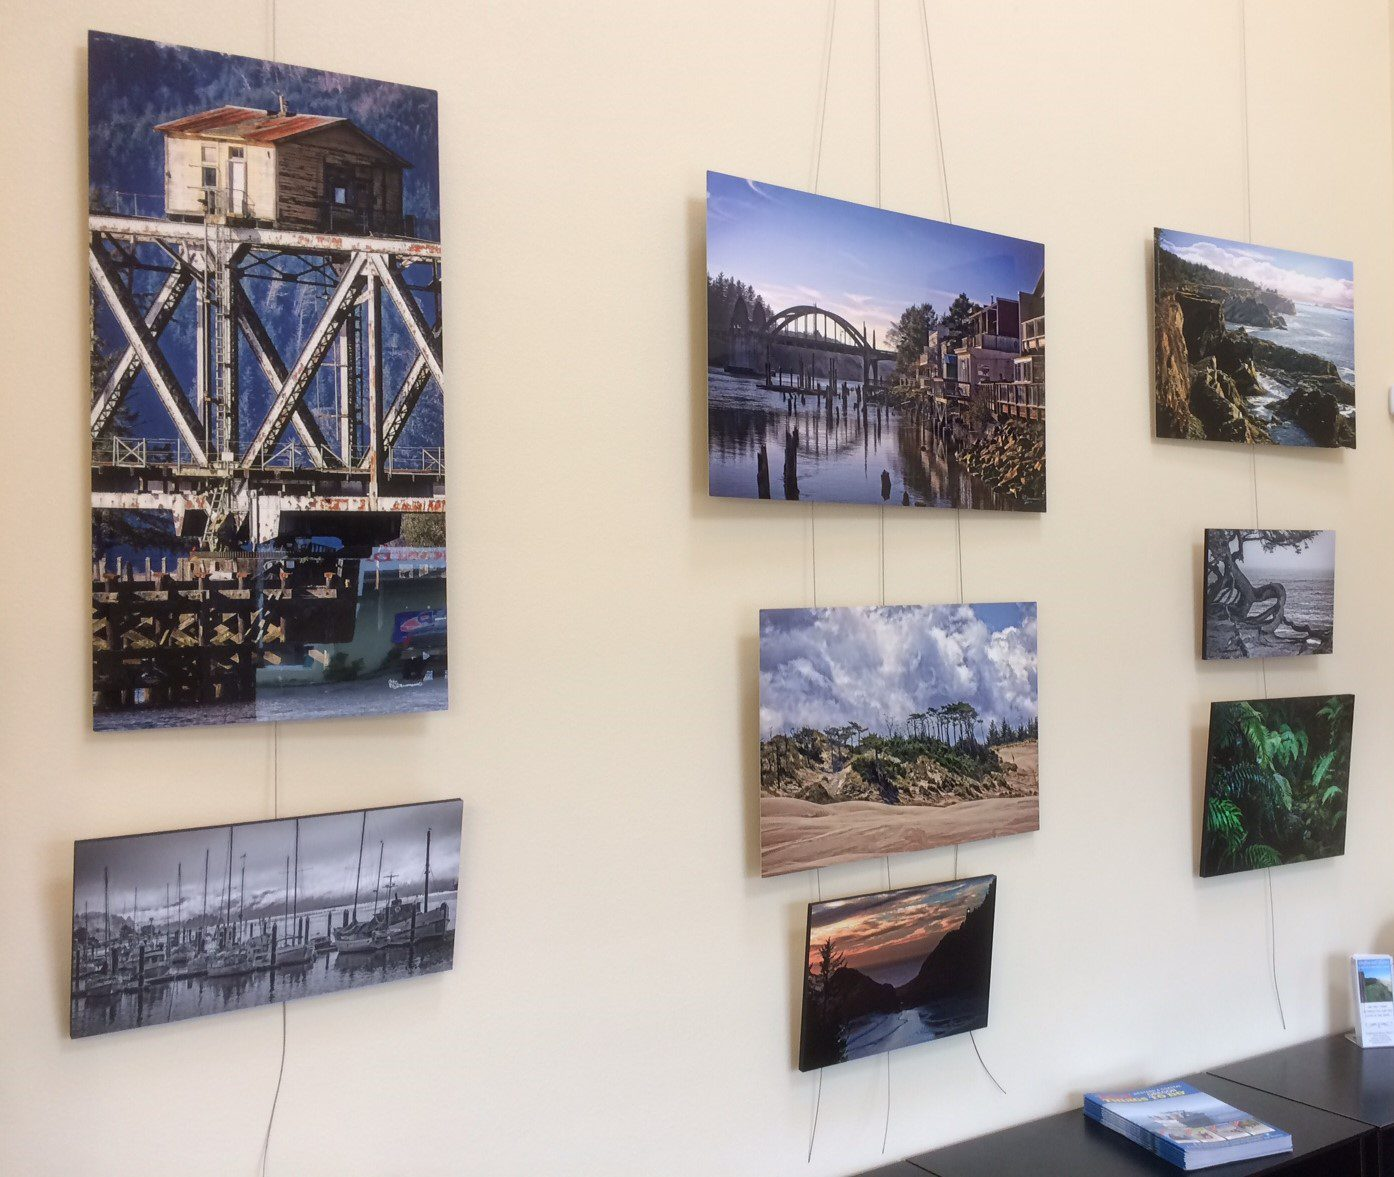 ARTISTIC PHOTOGRAPHY OF RODGER BENNETT ON DISPLAY AT CHAMBER'S VISITOR CENTER IN NOVEMBER